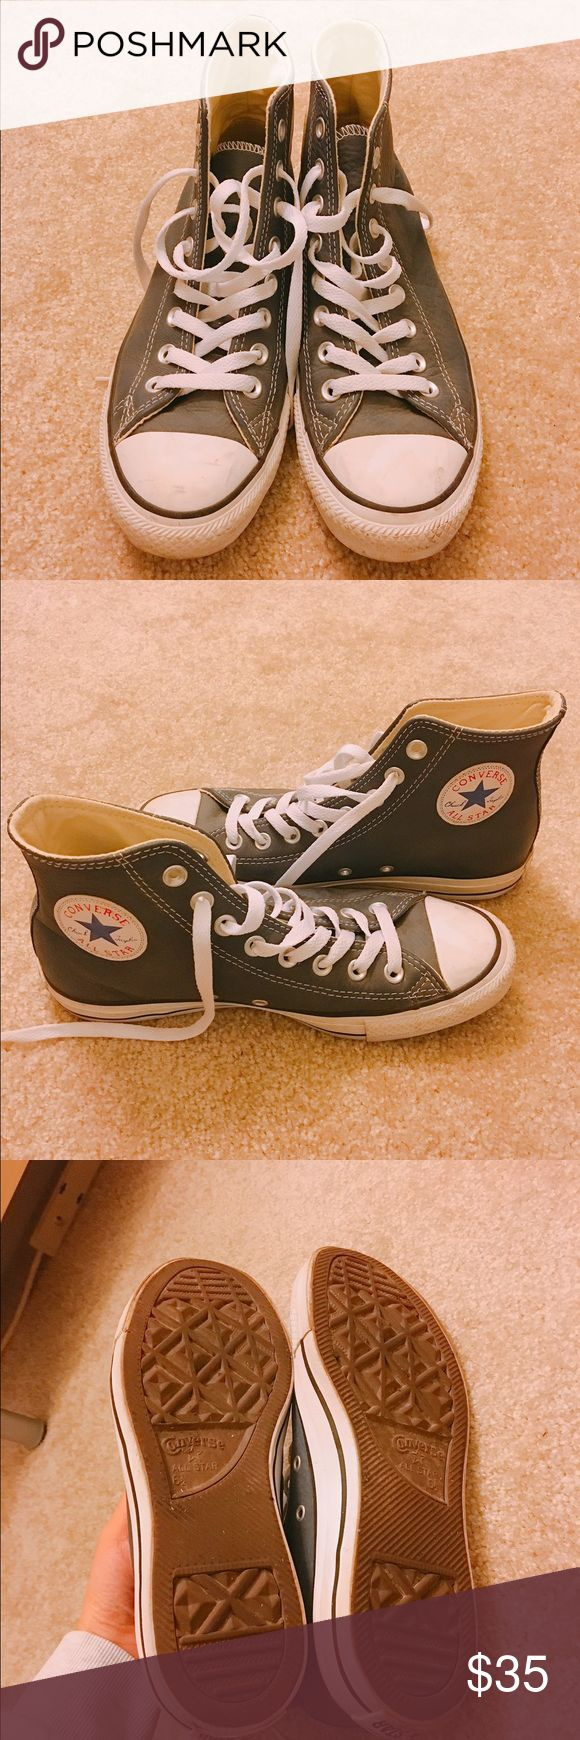 Converse High Top All Star Leather Women size 8.5. Like new condition - only wore once. Leather. Converse Shoes Sneakers